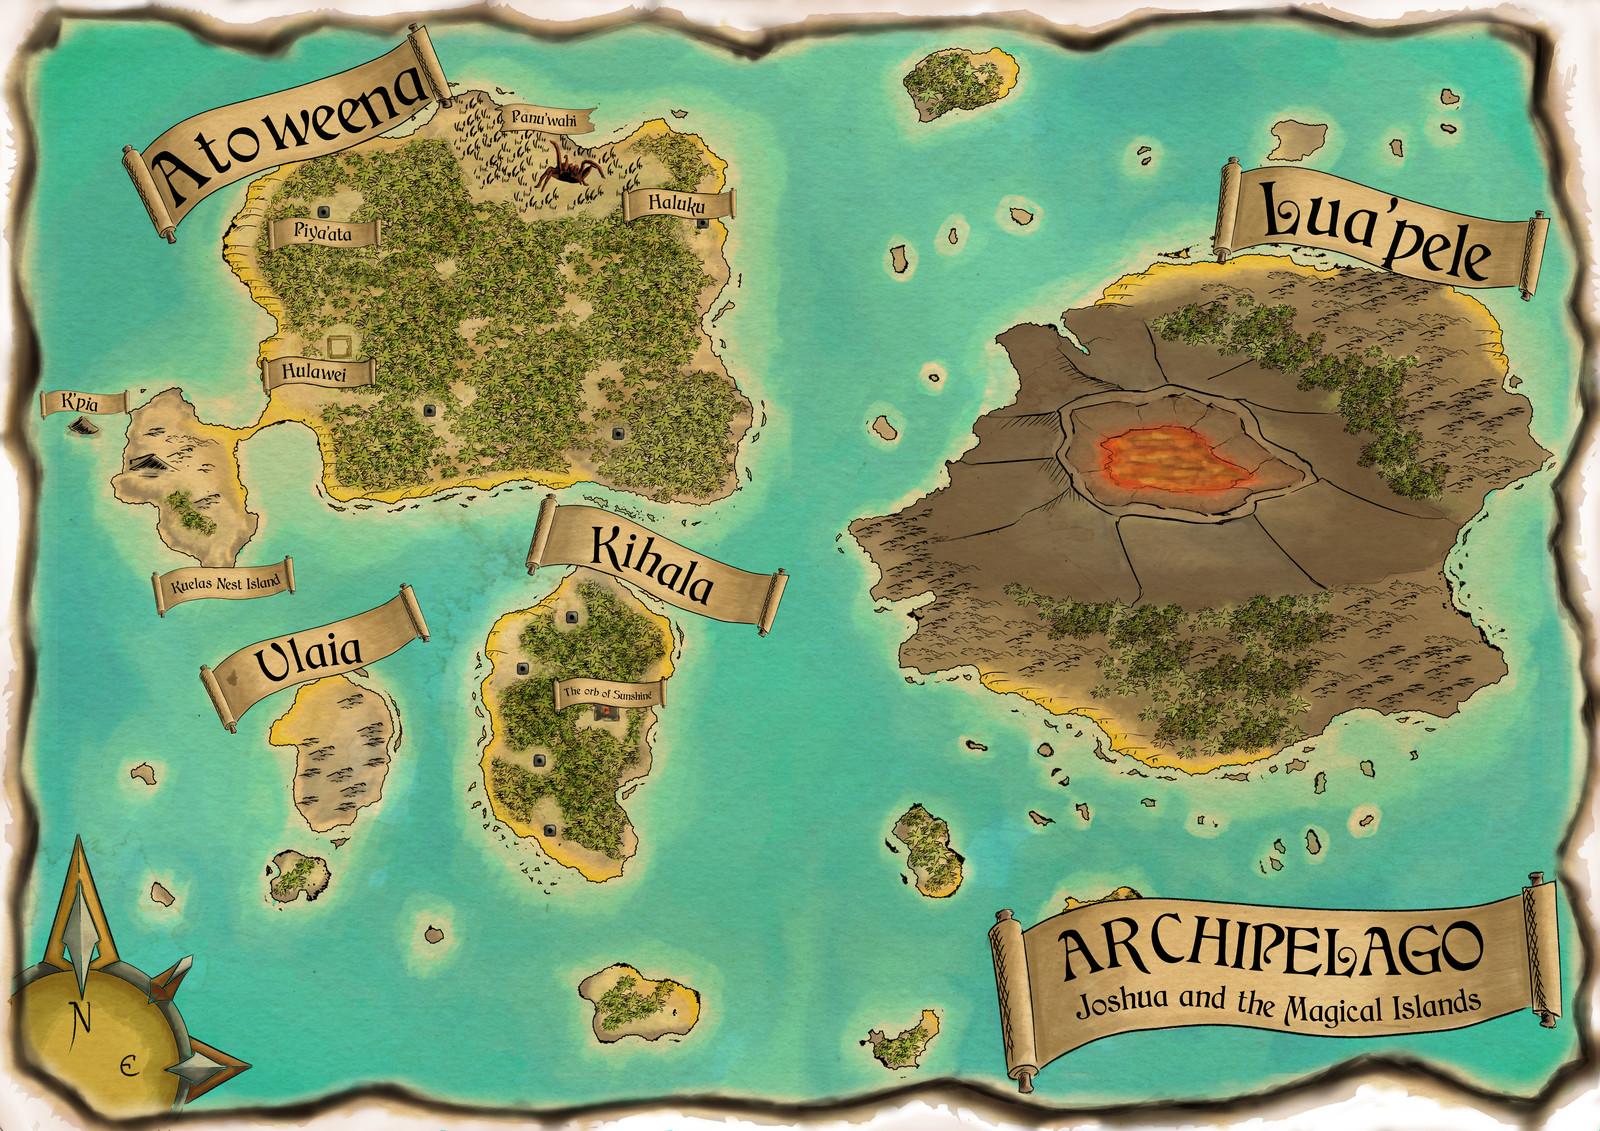 Archipelago commissioned map